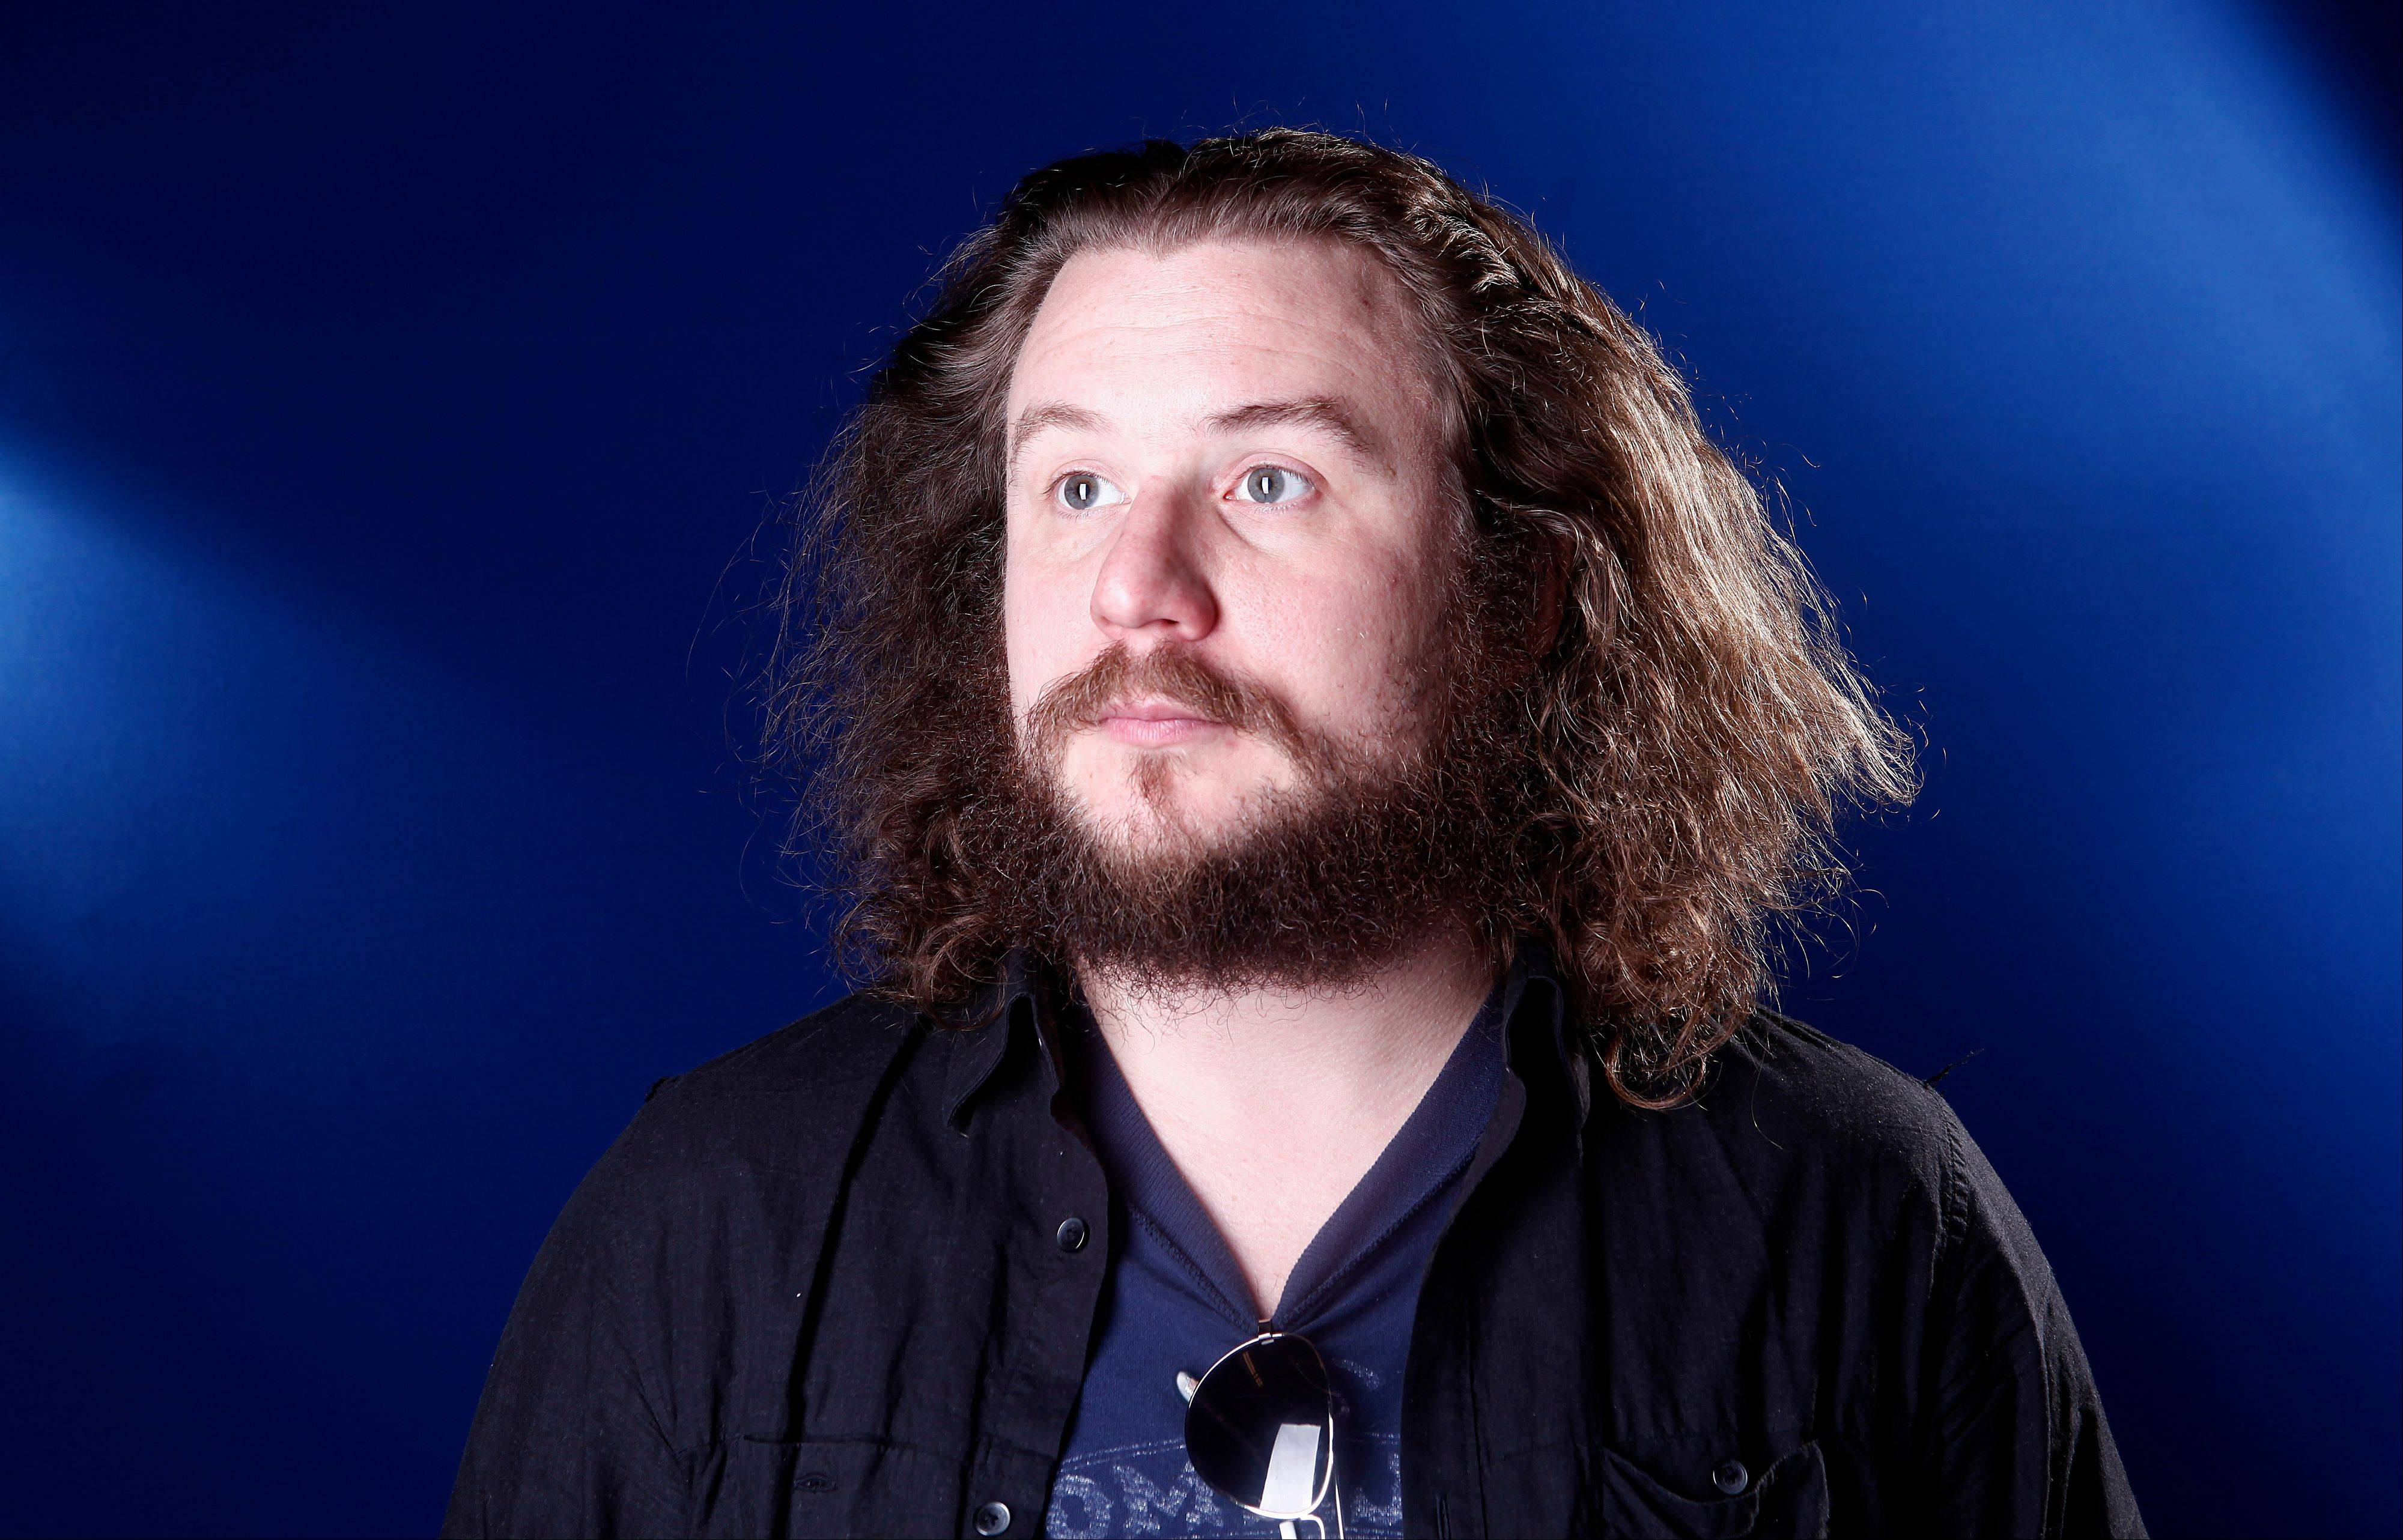 Musician Jim James thinks music is a spiritual force that can unite humanity. He's taking that message and his new album to the South By Southwest Music Festival this week.